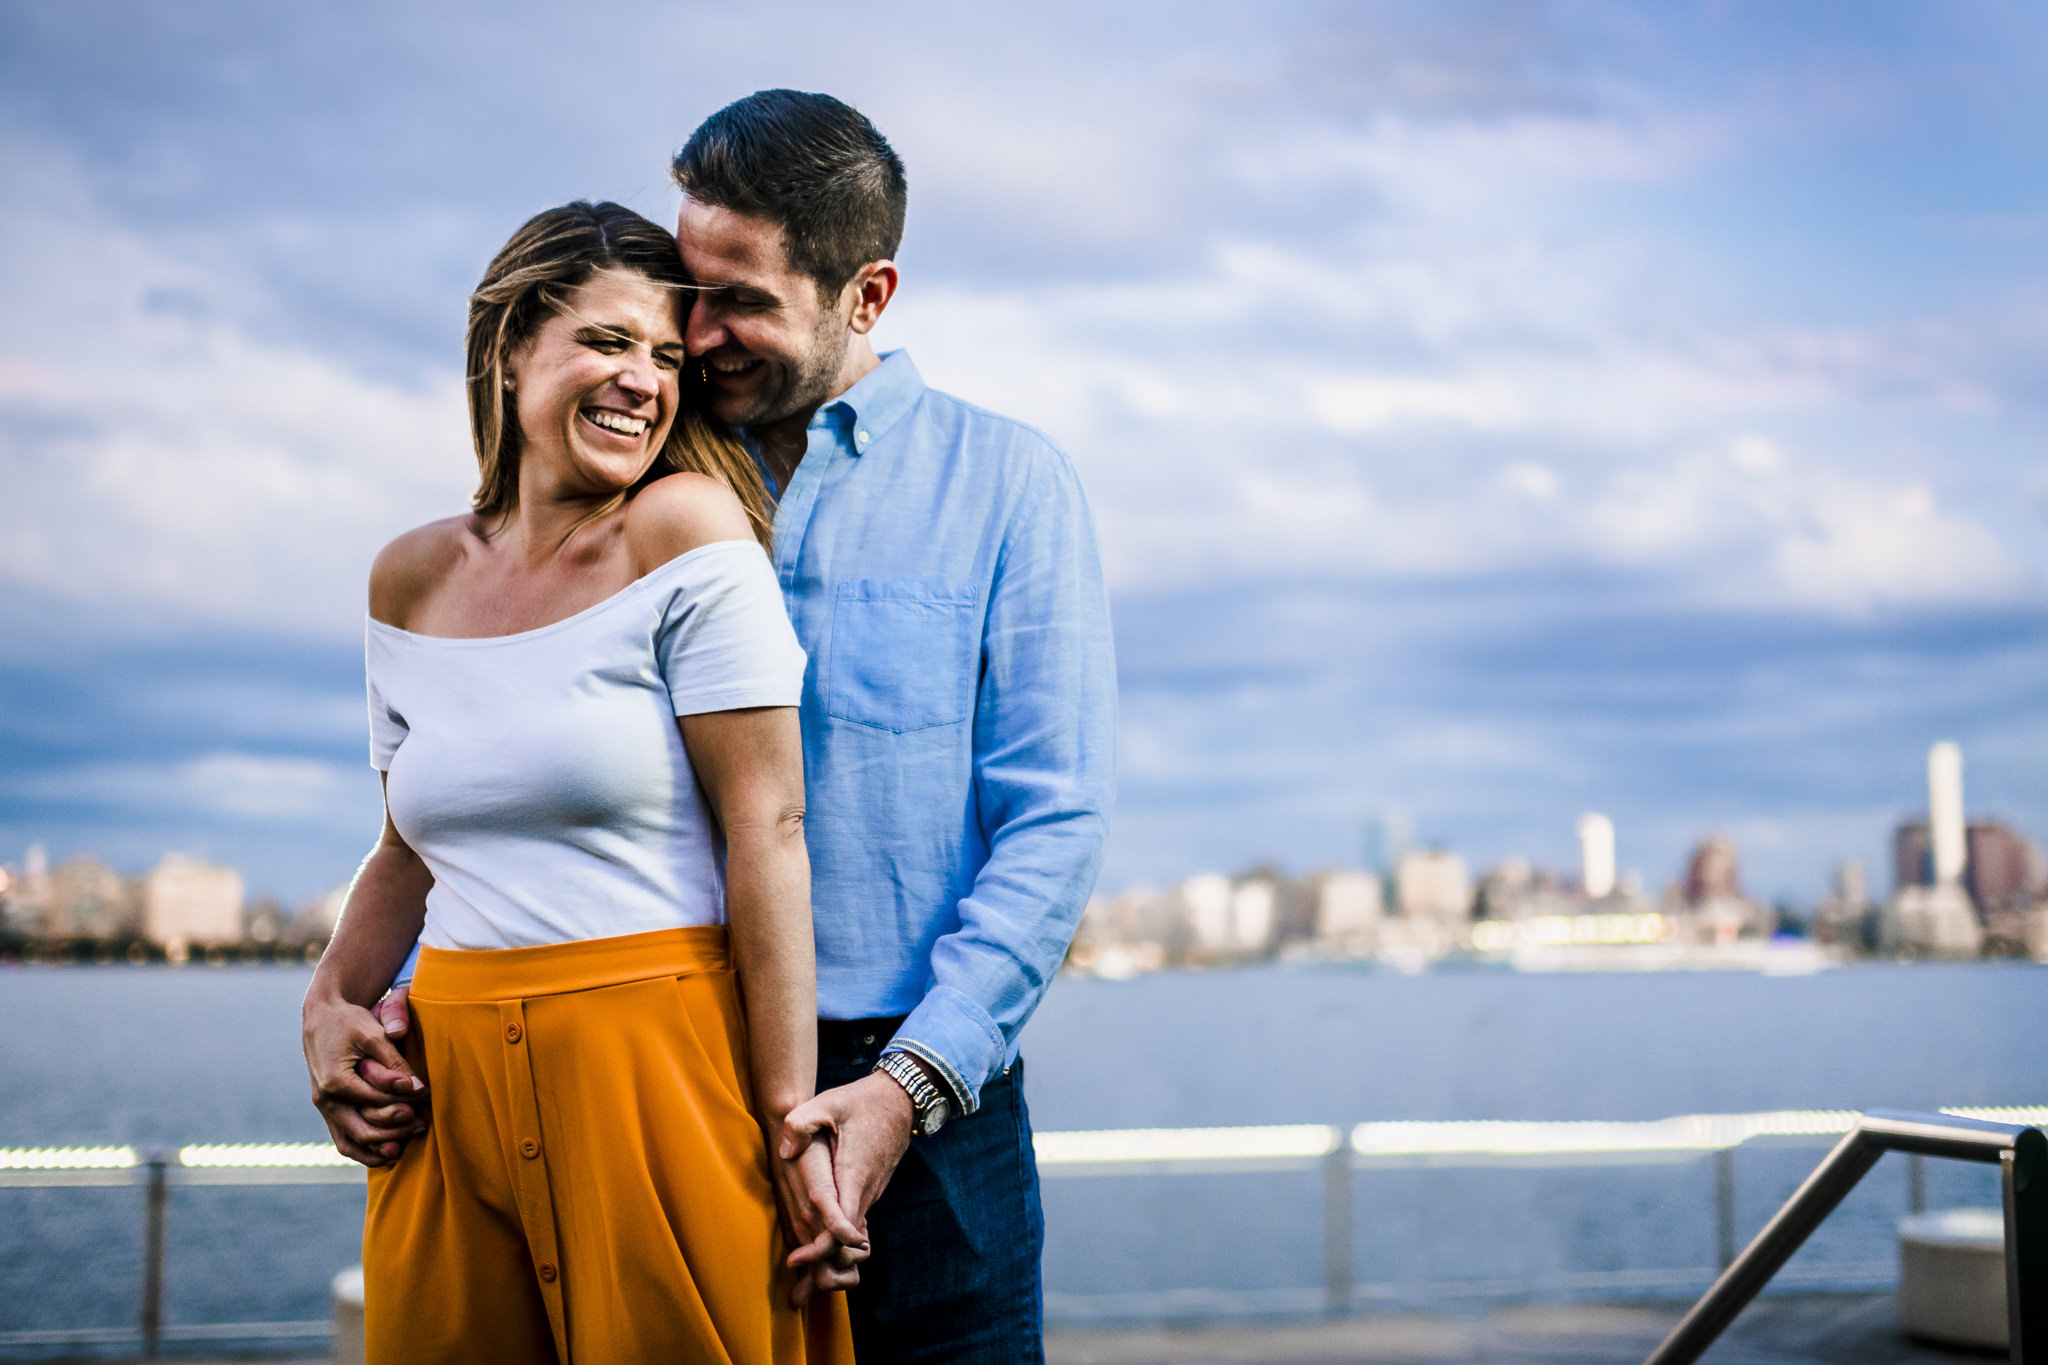 Flanagan-Pier-Hoboken-Engagement-Photos-NYC-Photographer-01.JPG